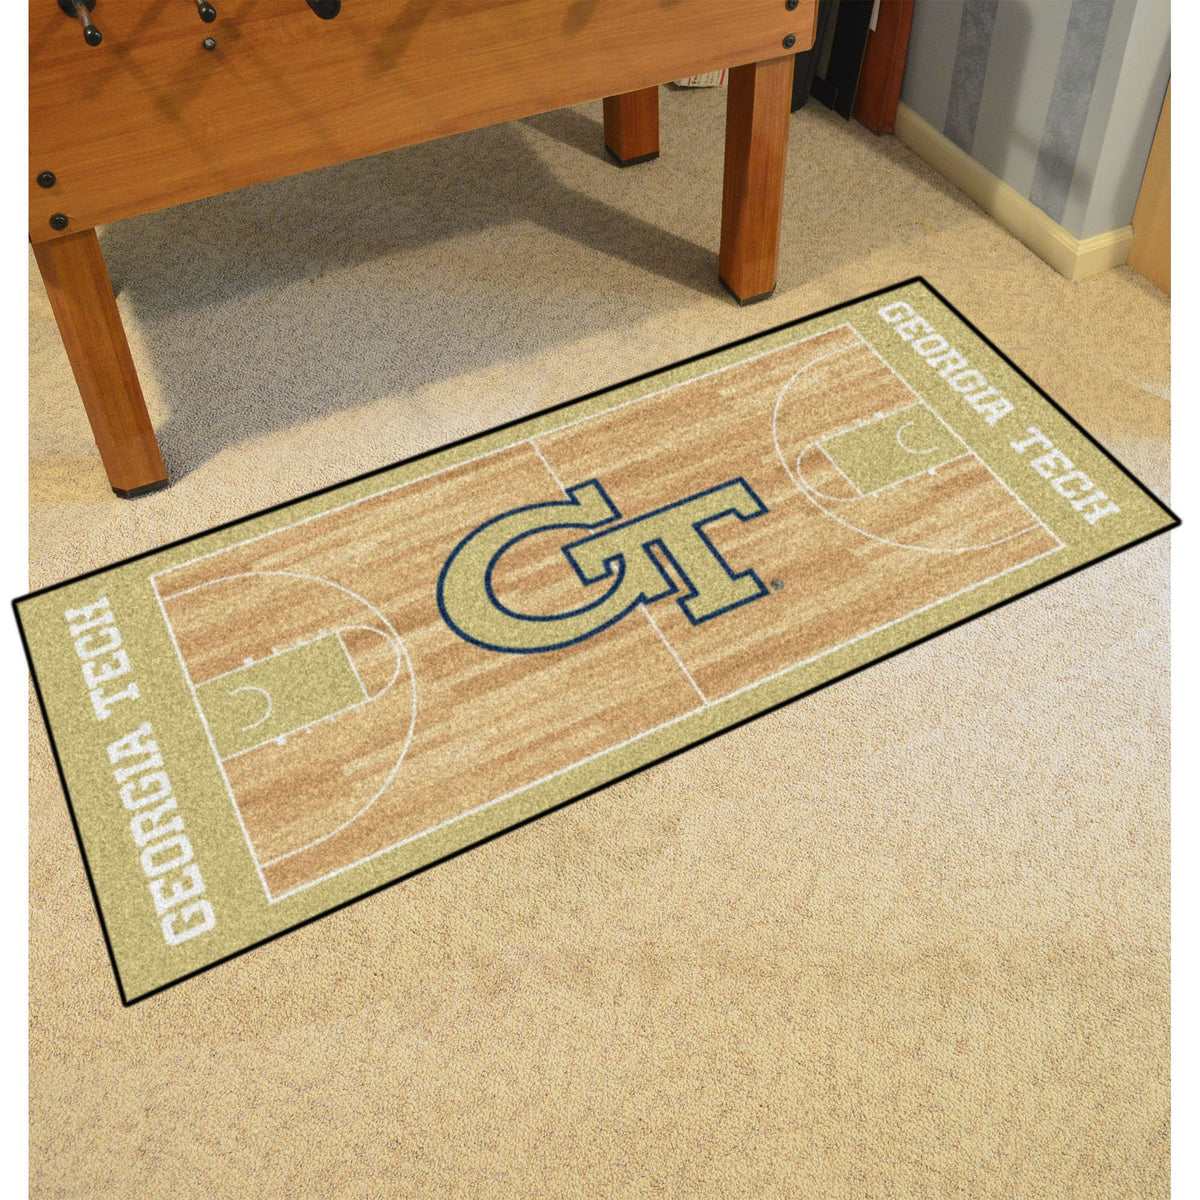 Collegiate - NCAA Basketball Runner Collegiate Mats, Rectangular Mats, NCAA Basketball Runner, Collegiate, Home Fan Mats Georgia Tech